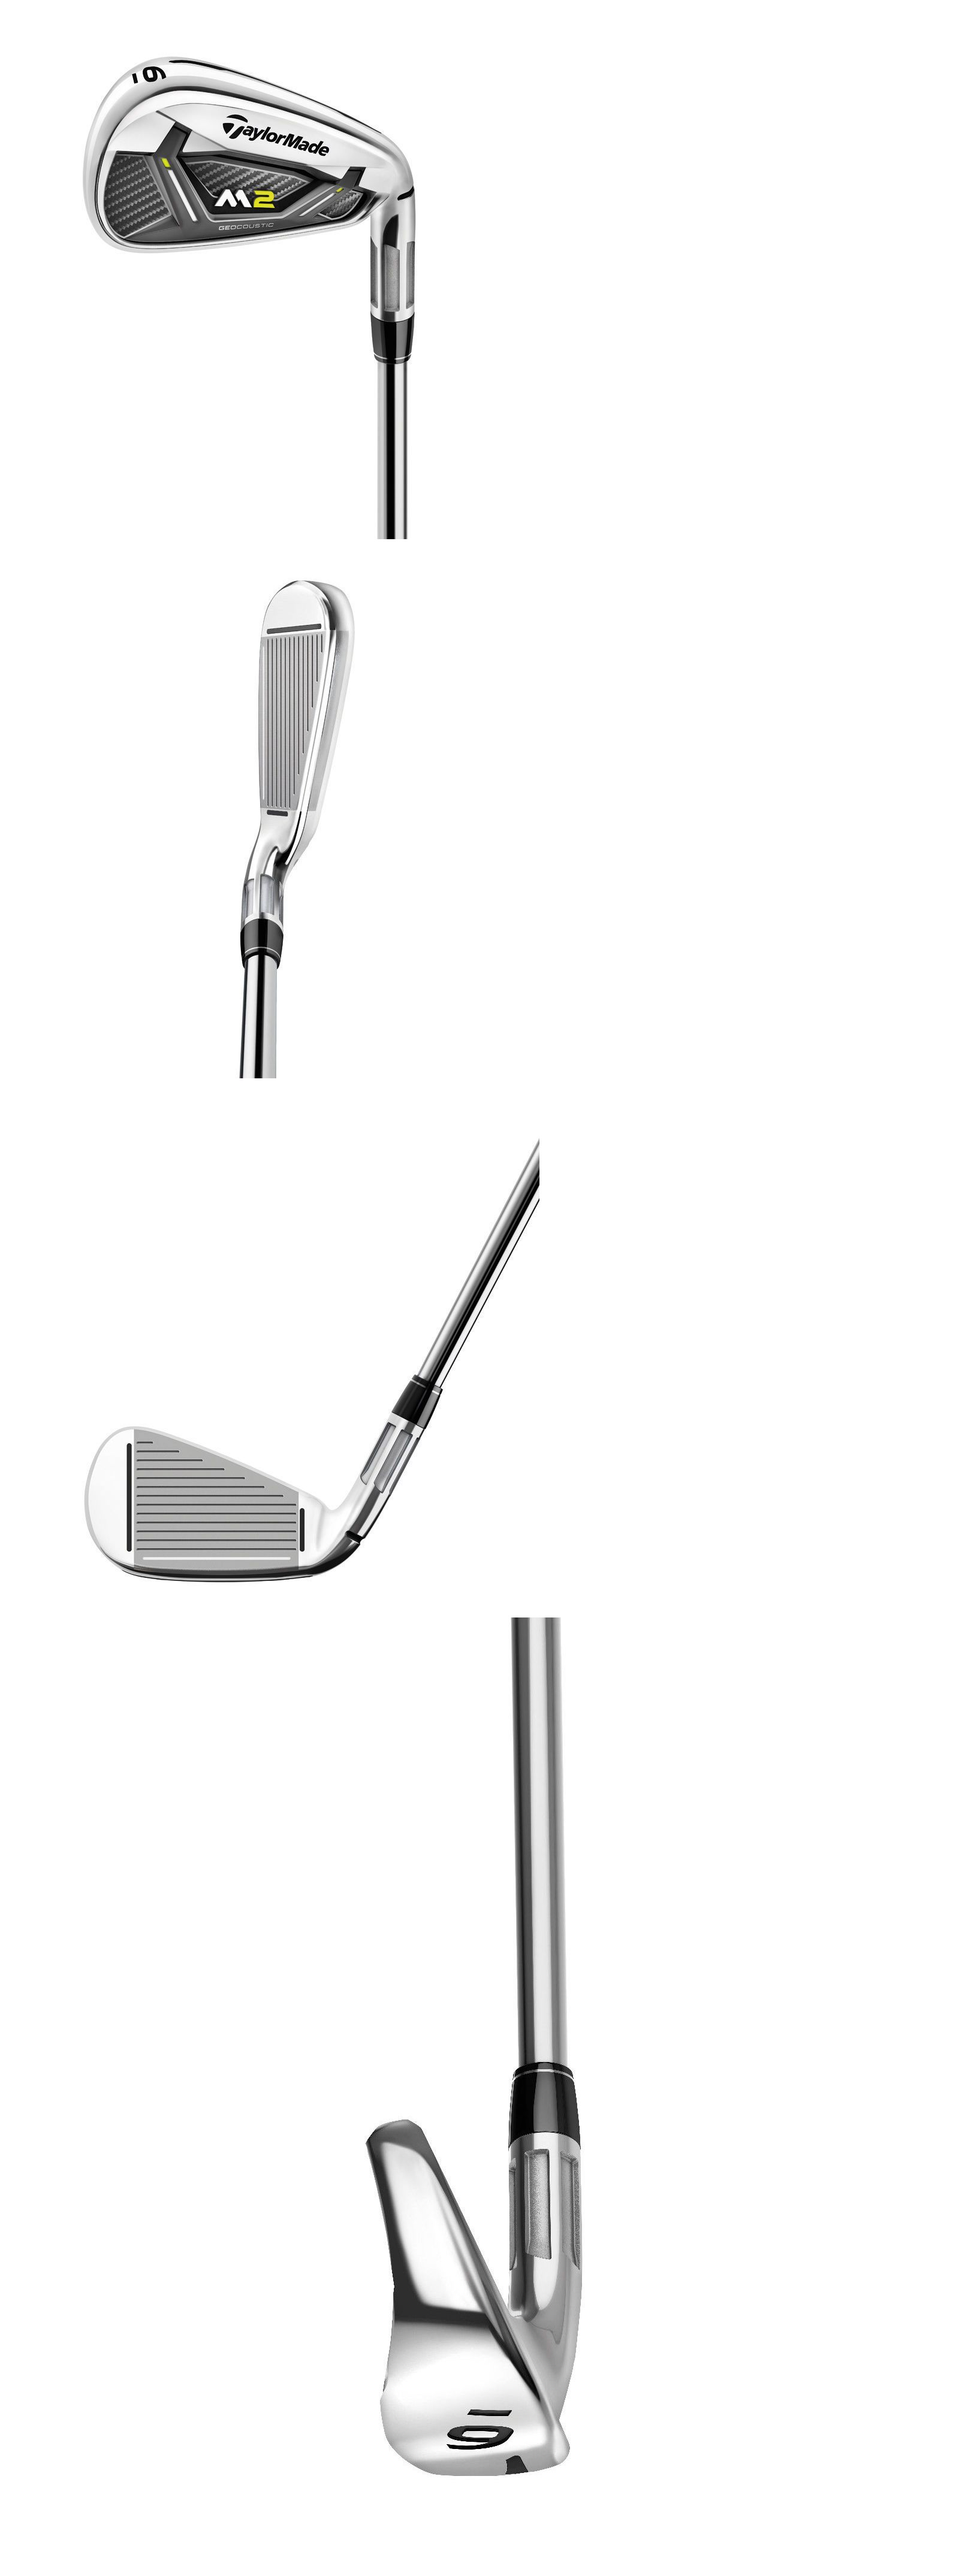 Reviews Of The Taylormade M2 Combo Golf Set - Golf clubs 115280 2017 taylormade m2 irons customize your set makeup and specs